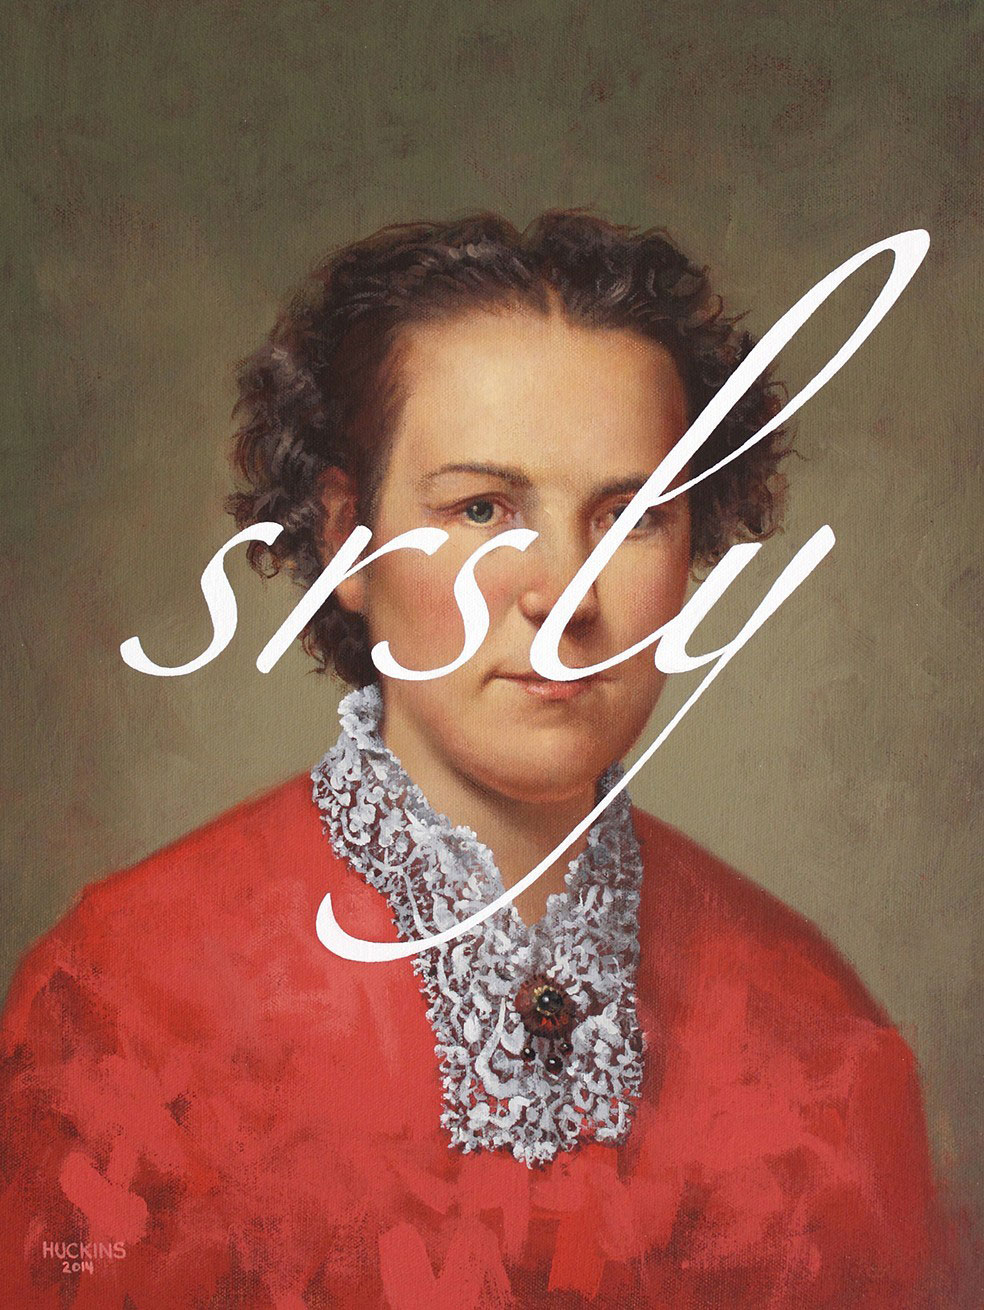 Shawn Huckins, A Lady: Seriously, acrylic on canvas, 16 x 12 in (41 x 30 cm)2014. Private collection, Los Angeles, CA.